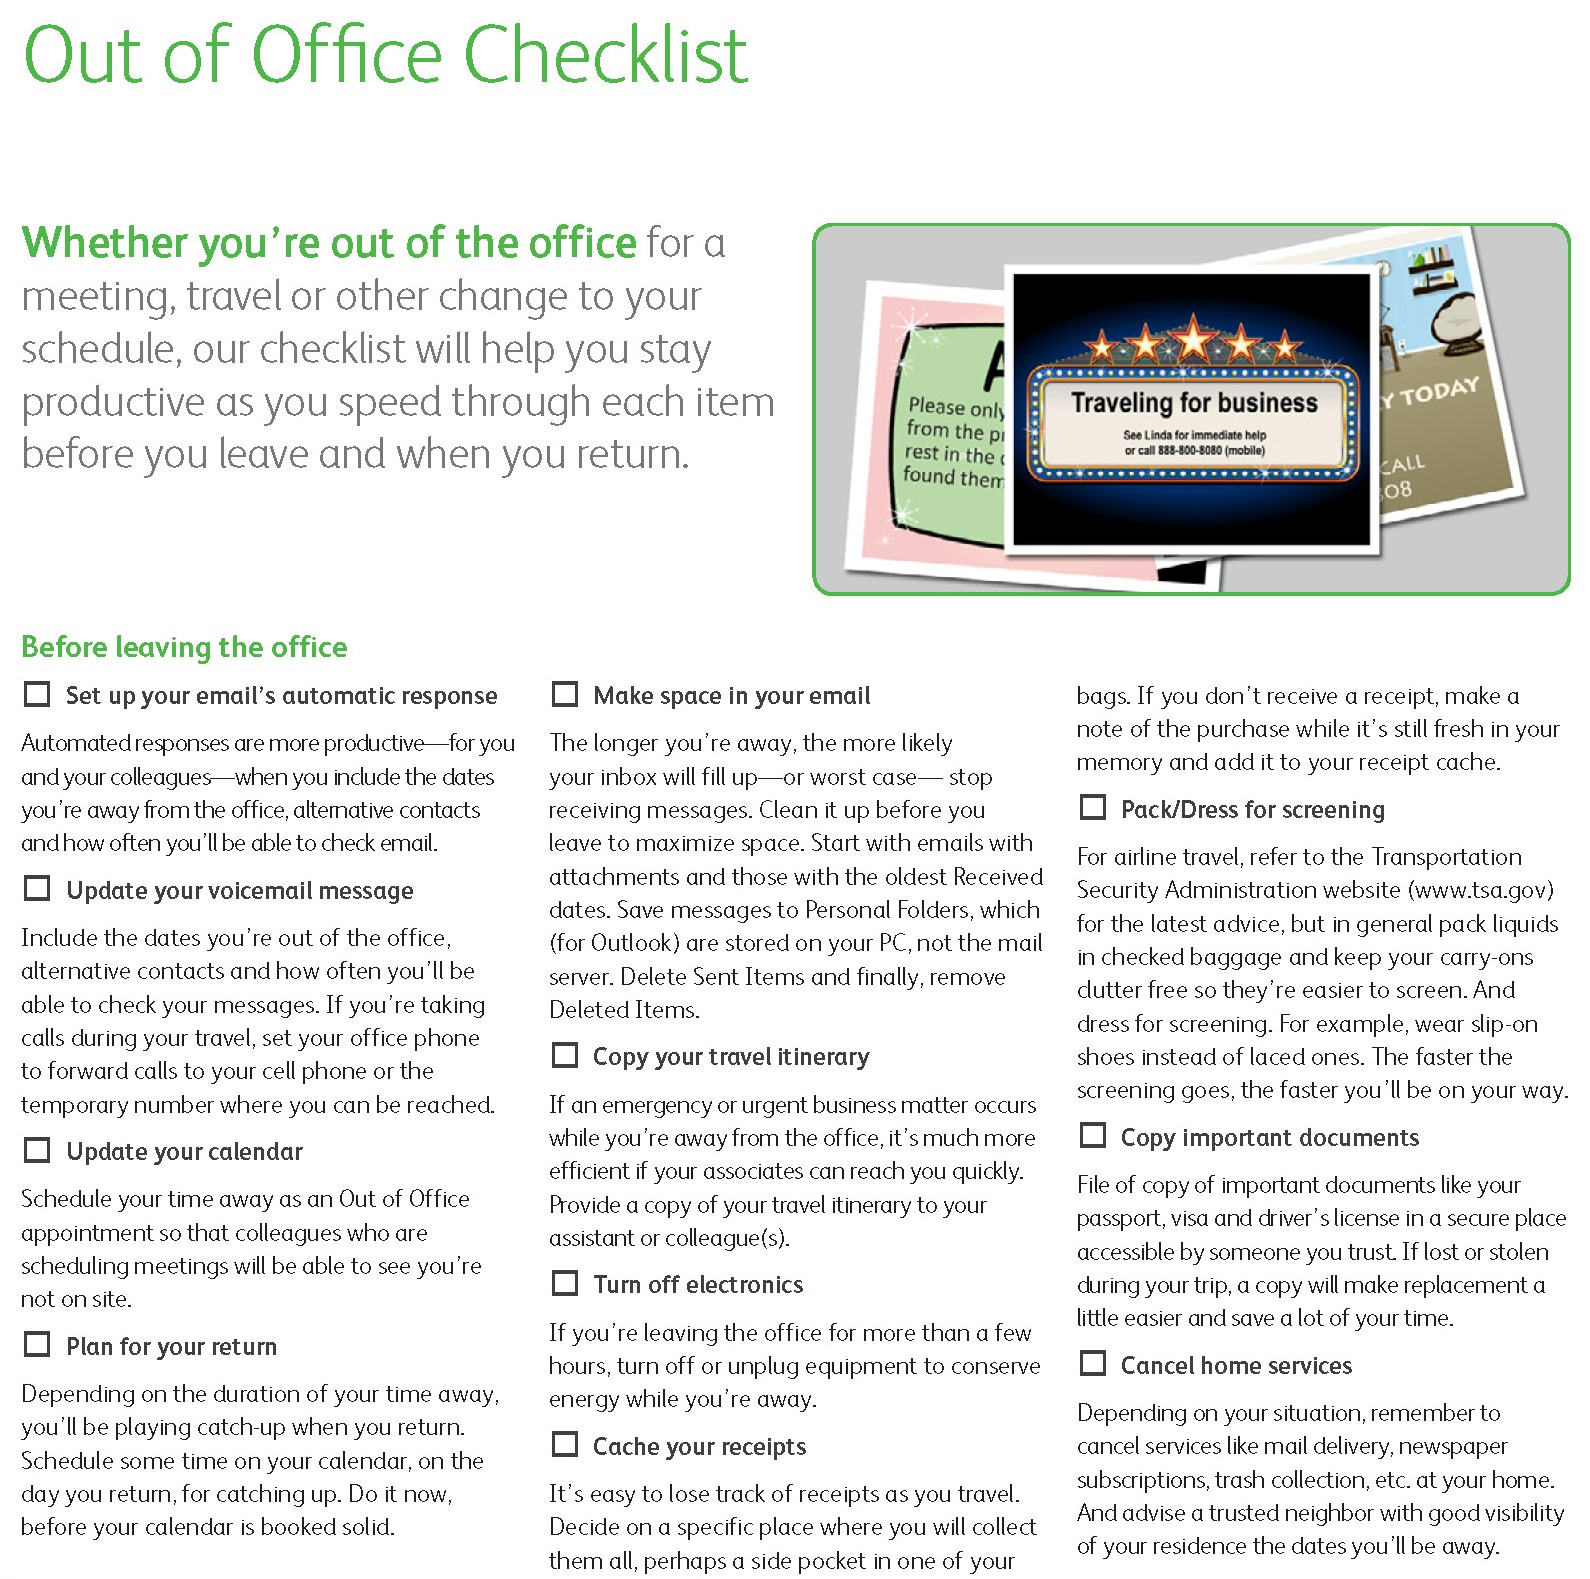 Out of Office Checklist_Page_1